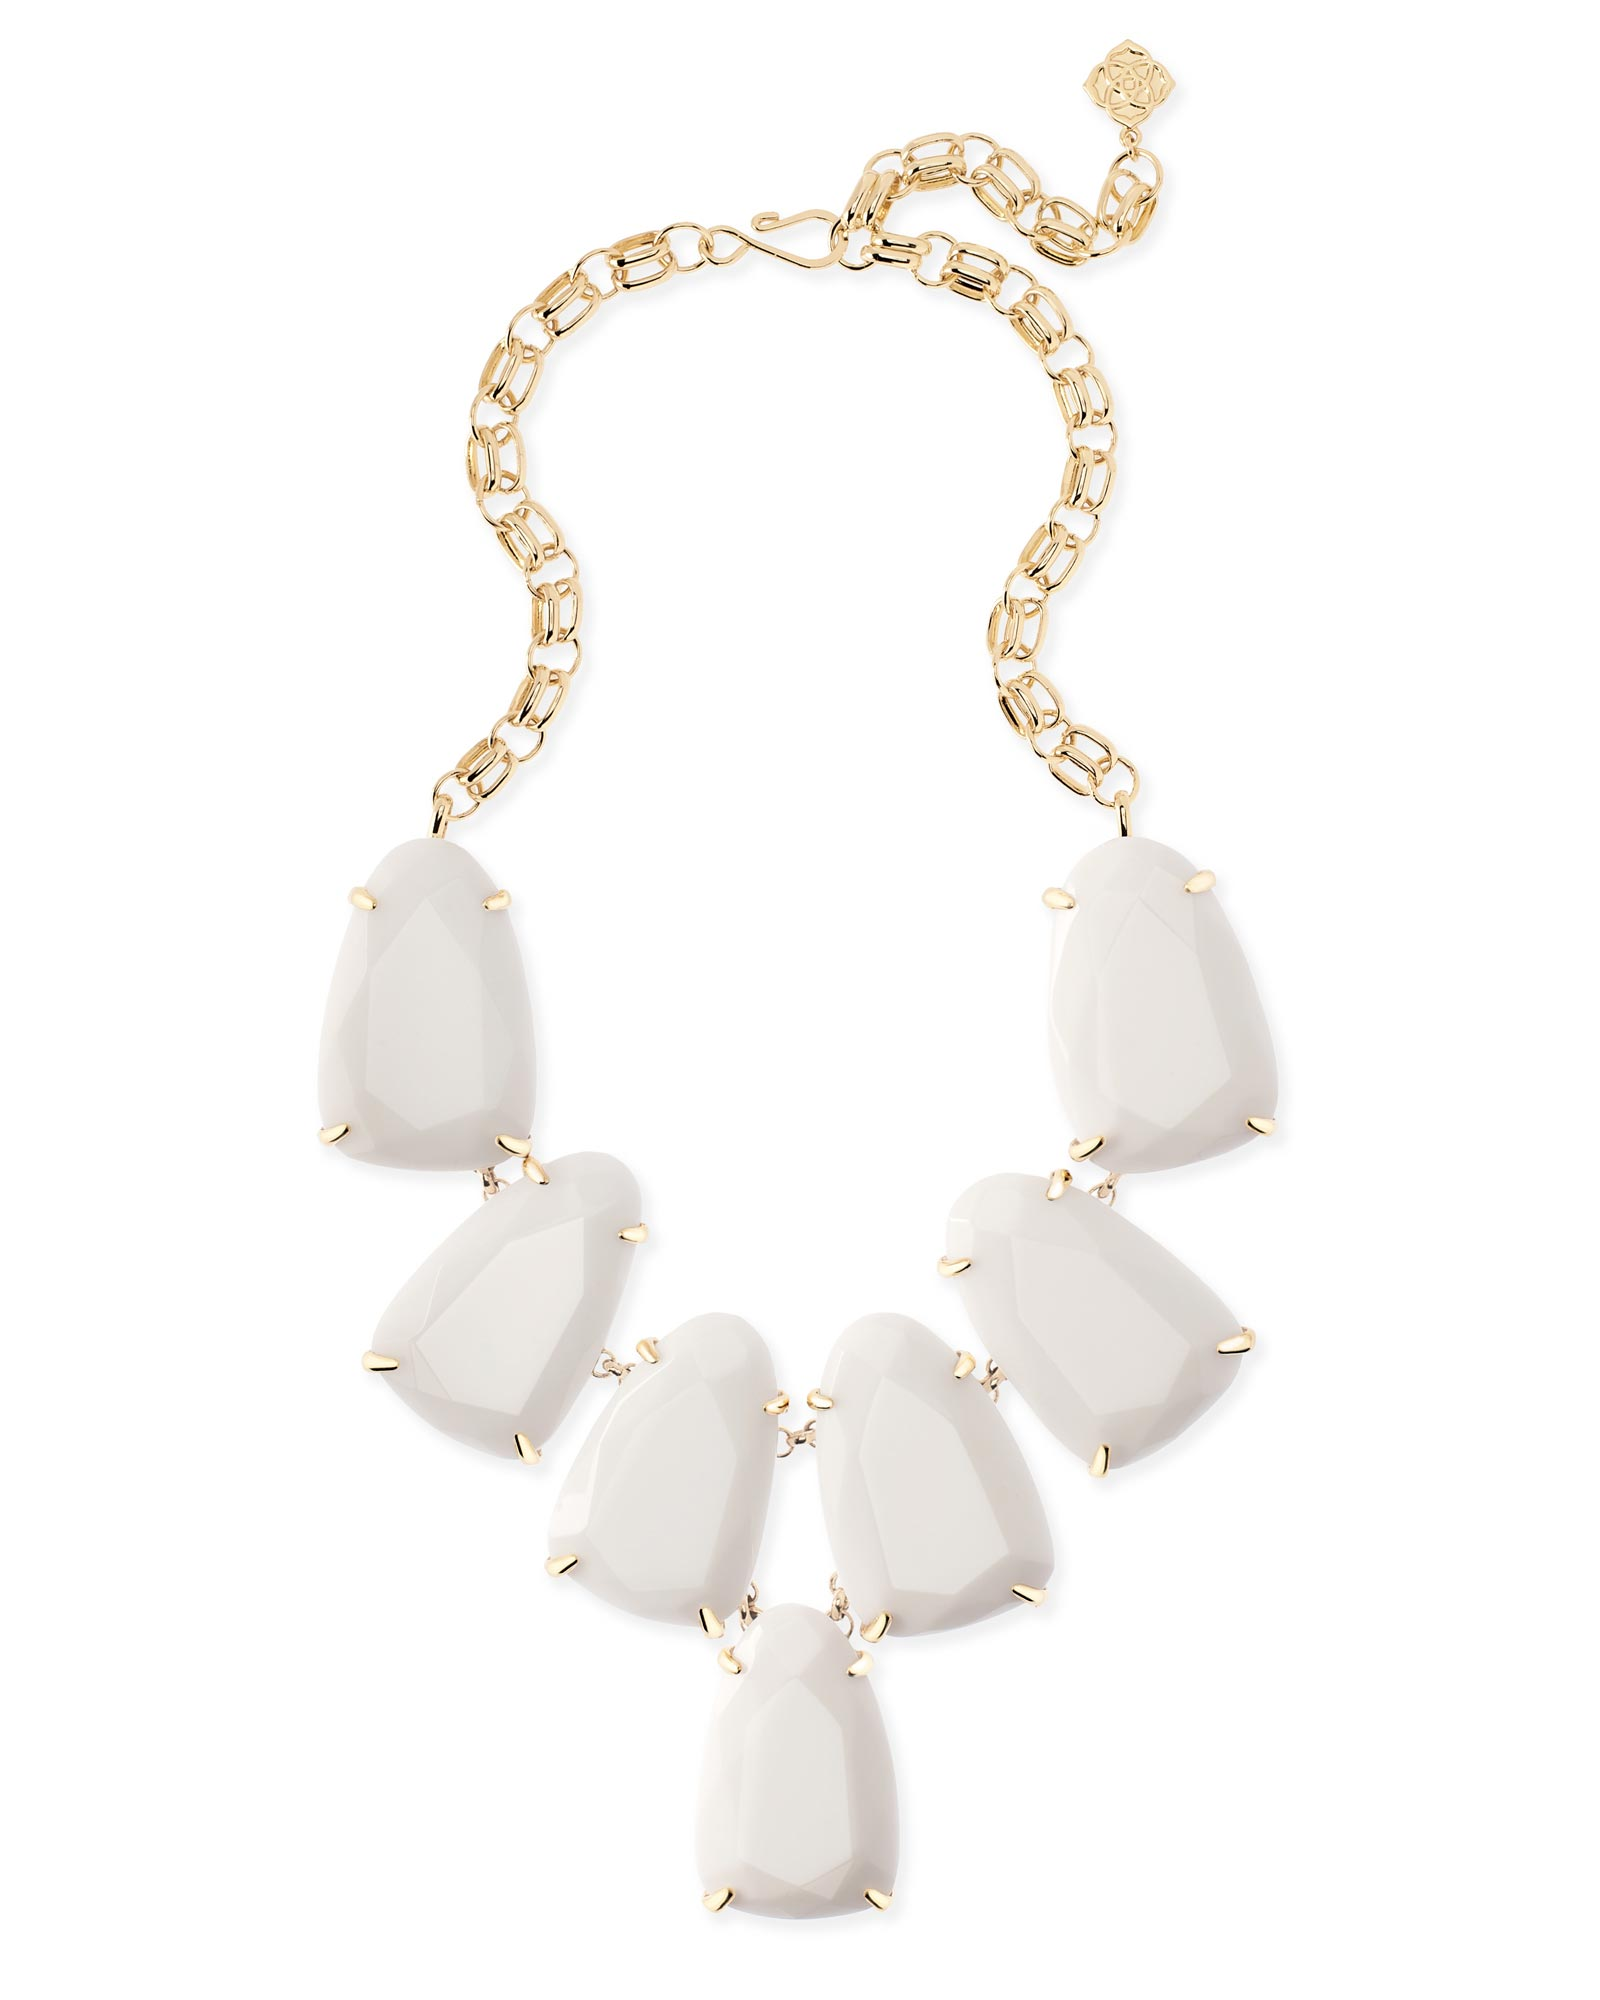 Harlow Statement Necklace in White